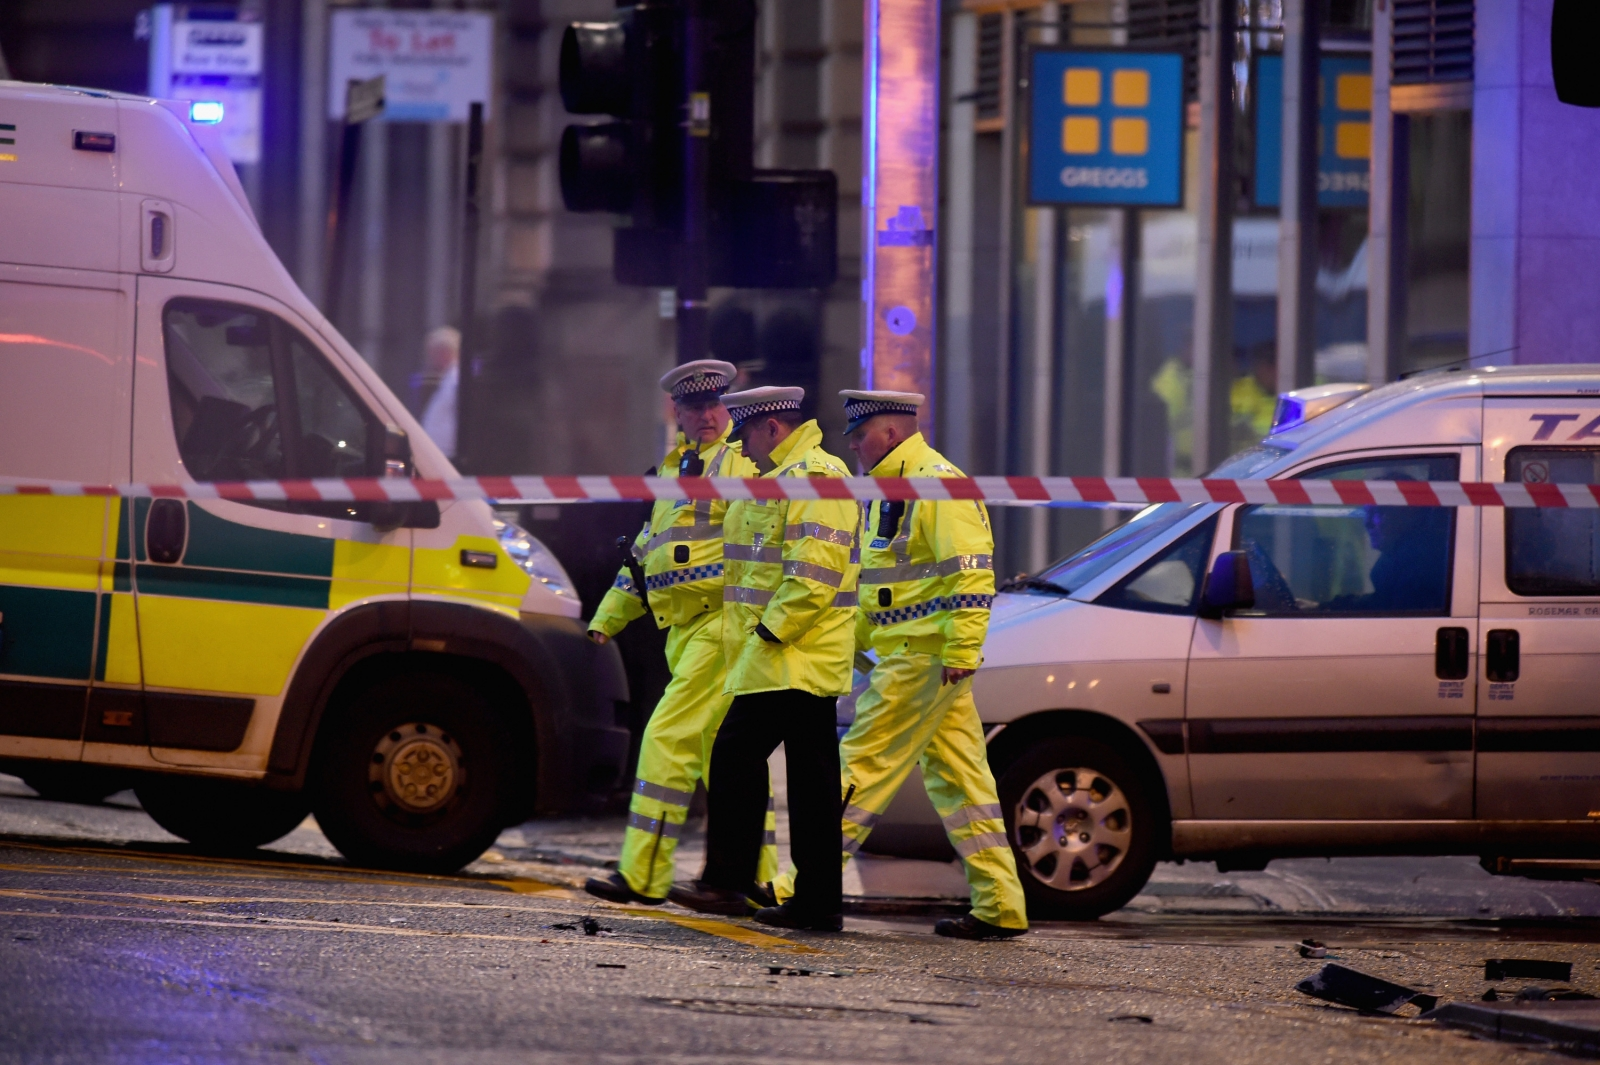 Bin lorry crash in Glasgow brings city-centre to a standstill